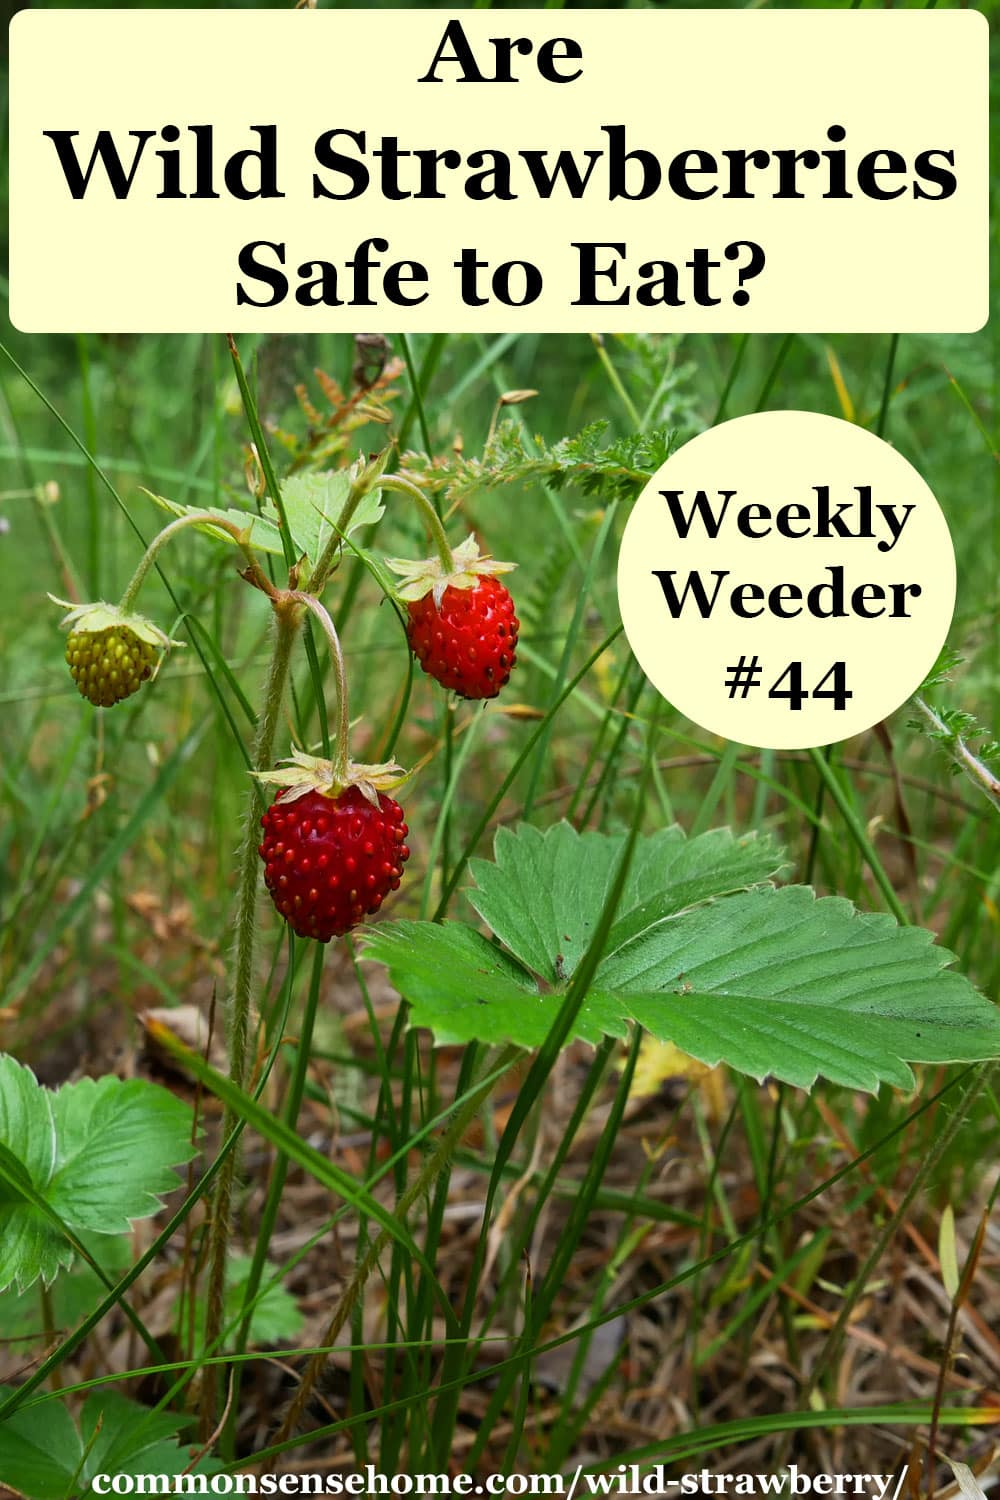 Are Wild Strawberries Safe to Eat?